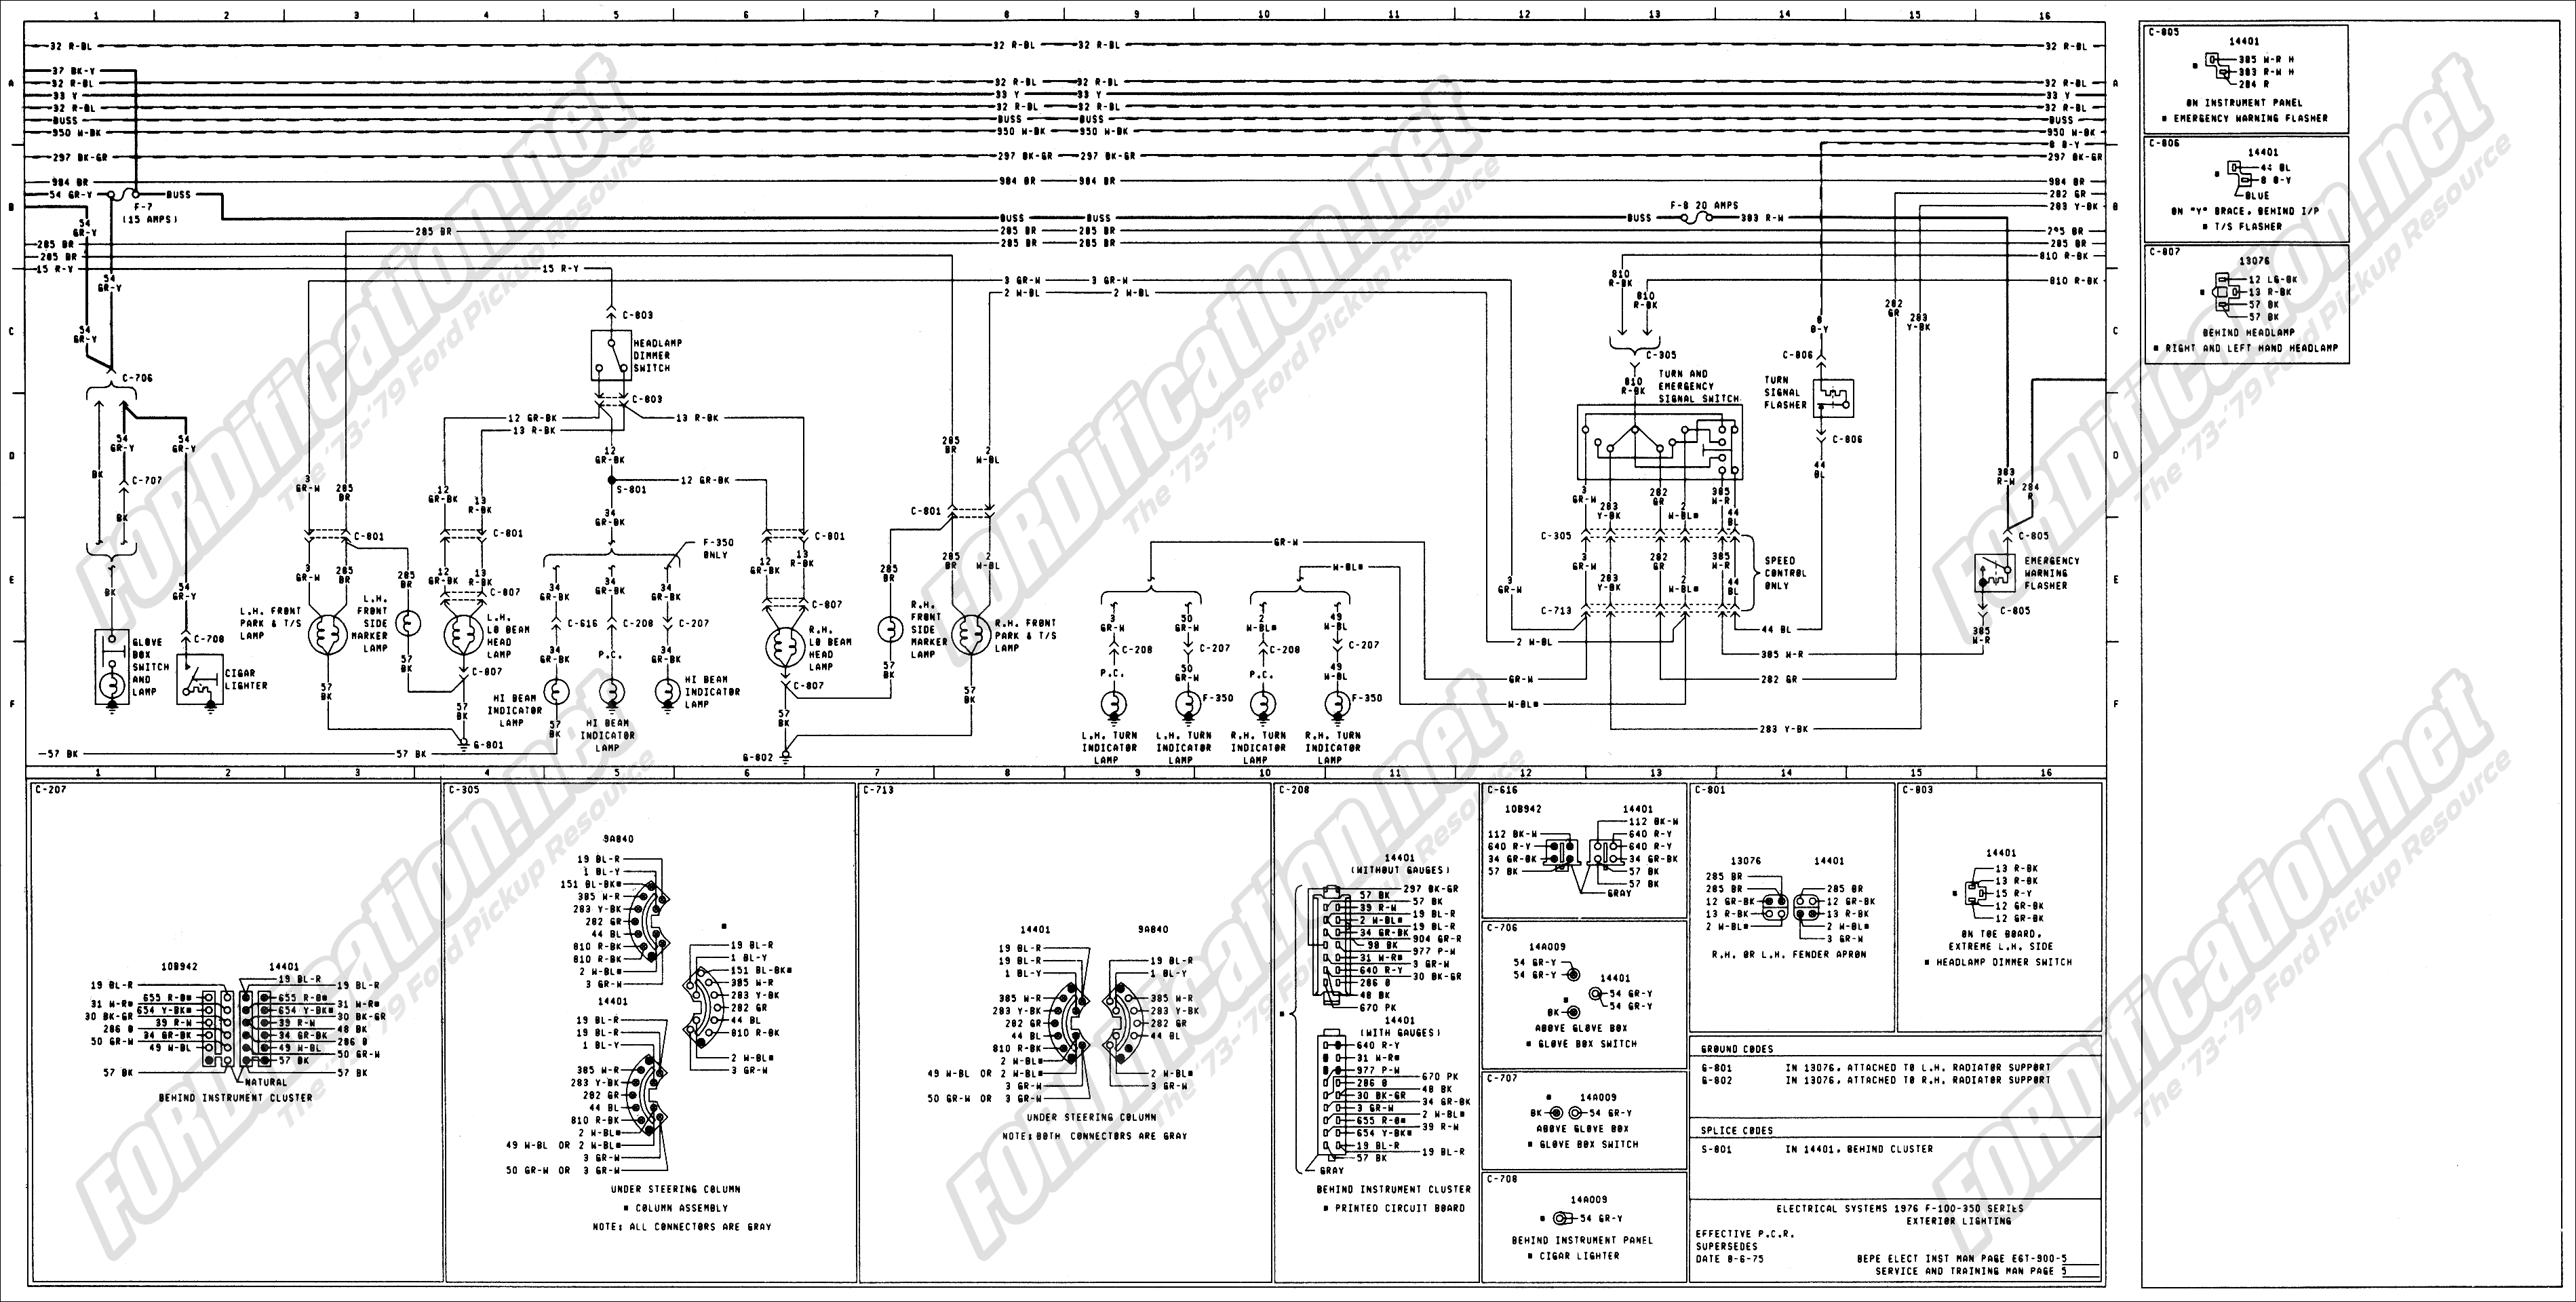 wiring_76master_5of9 1973 1979 ford truck wiring diagrams & schematics fordification net  at pacquiaovsvargaslive.co